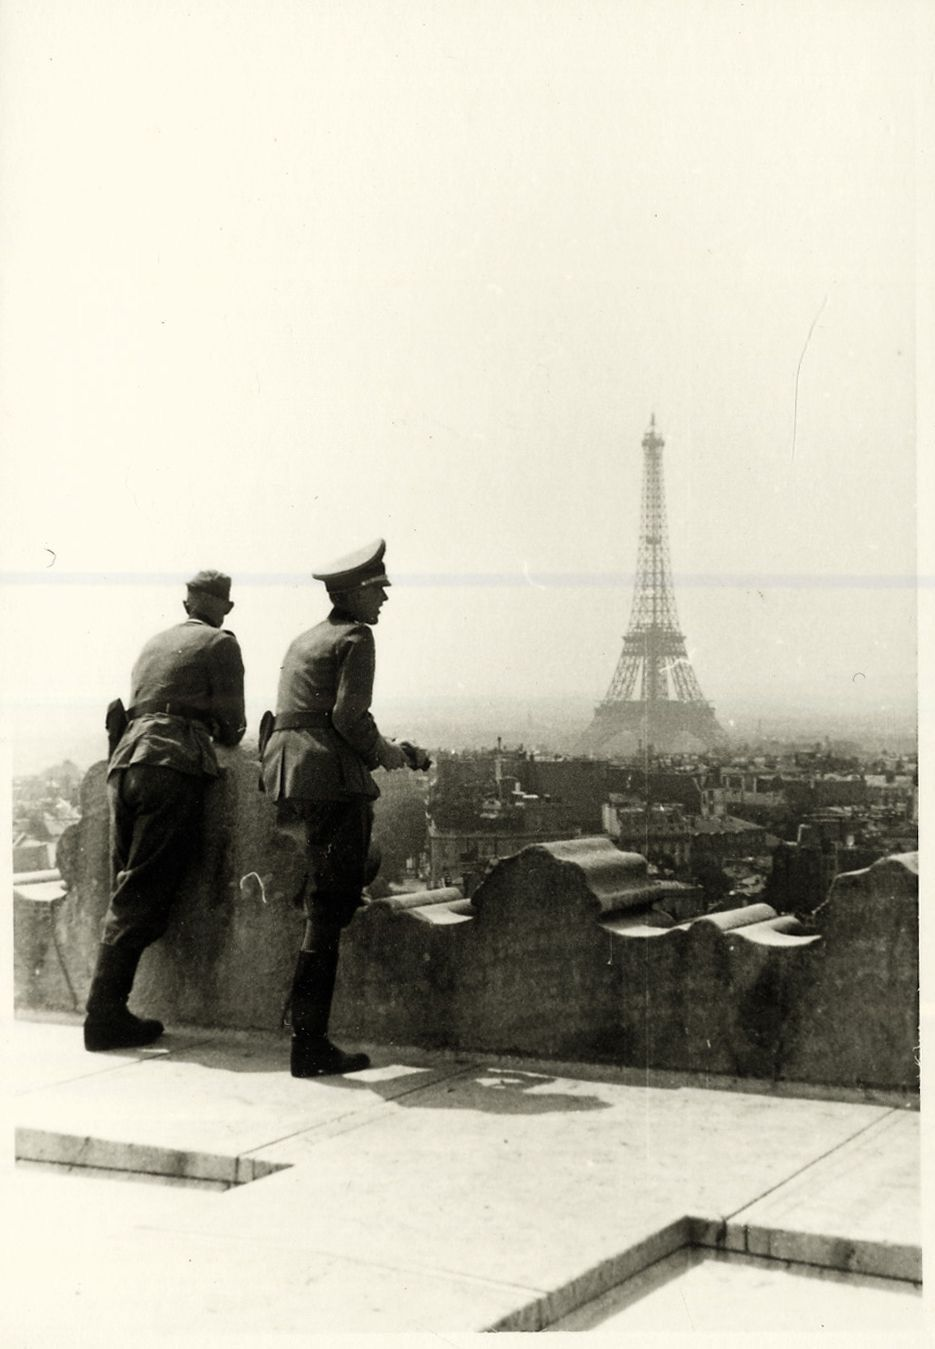 German officers in Paris, France